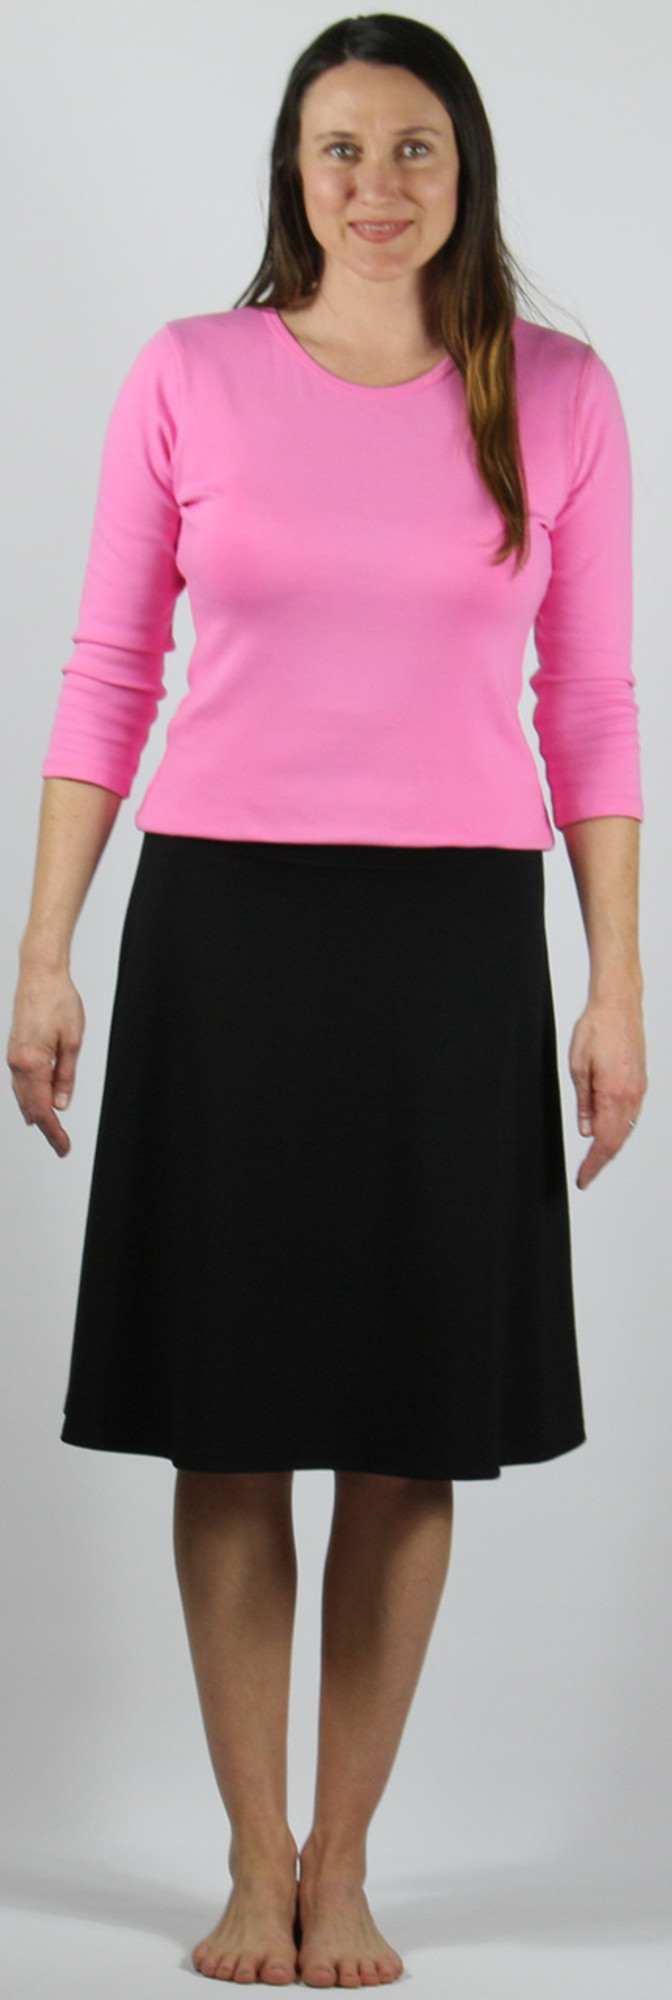 """A-line flippy skirt, ponte knit.  Model is 5'8"""", wearing size small."""